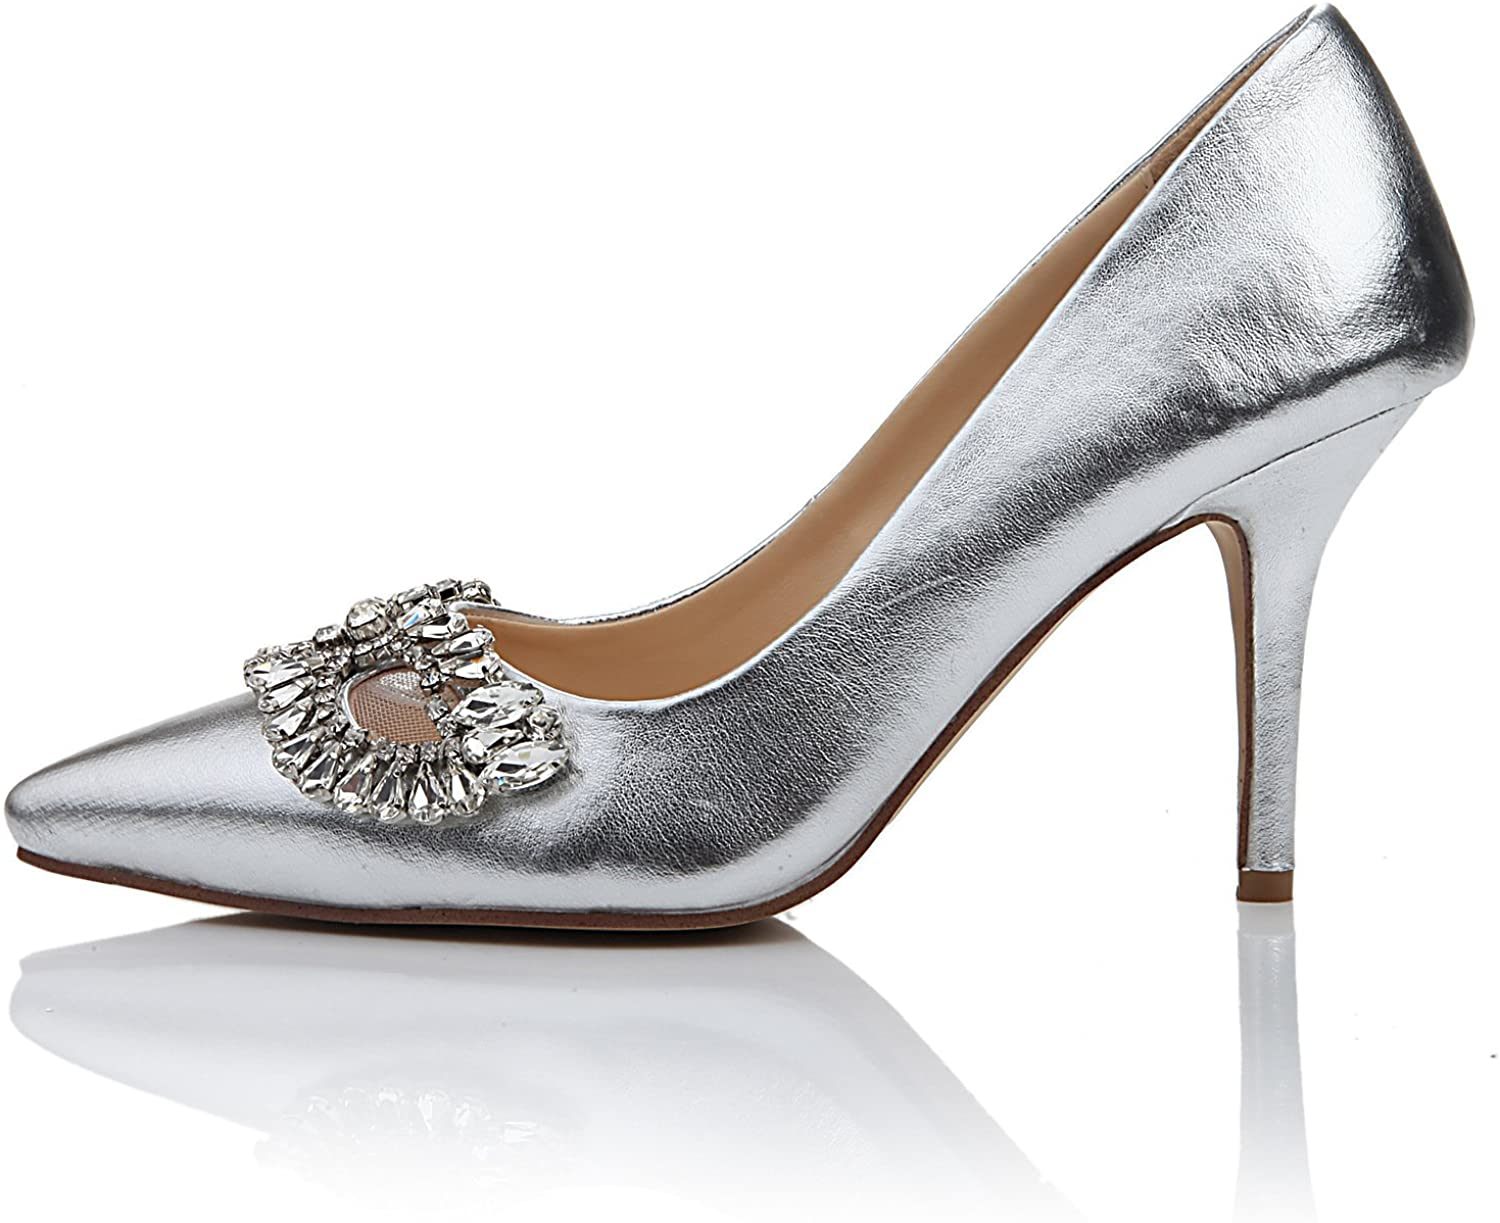 shoesmaker's heart Leather shoes Big Princess shoes shoes Silver Leather Club